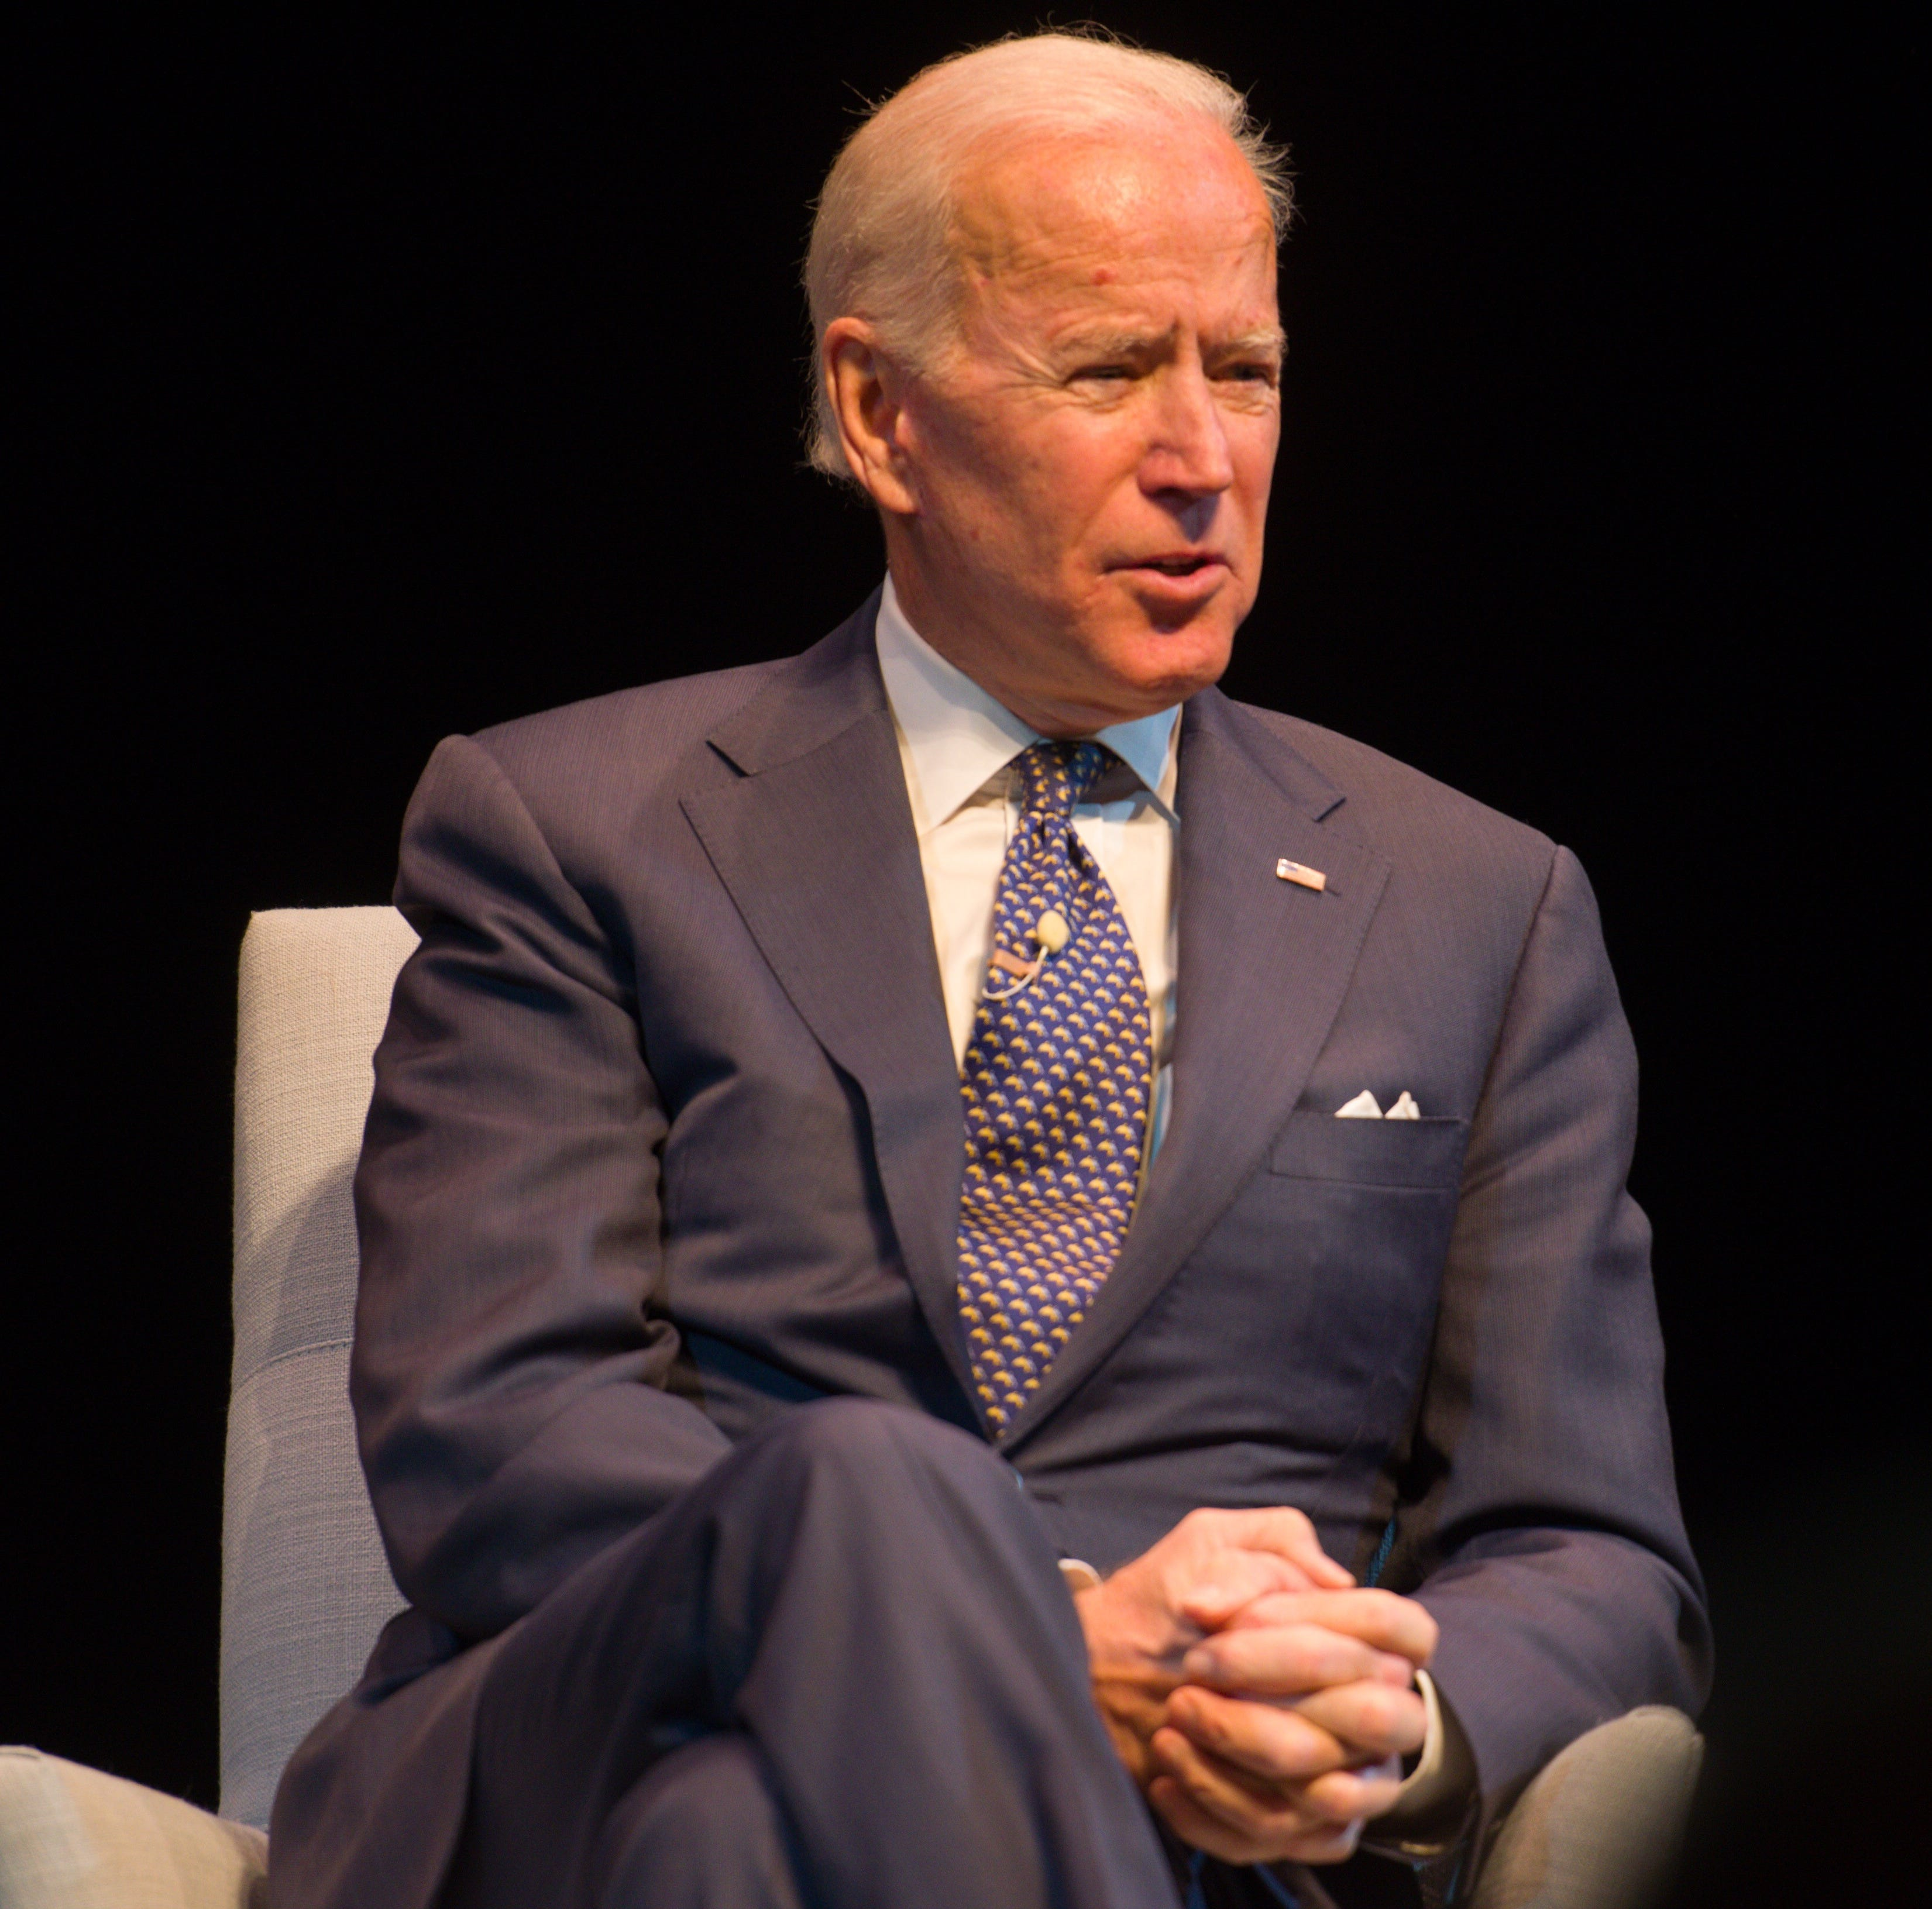 Joe Biden in Burlington: He pledged to son he'd 'stay engaged' in the world